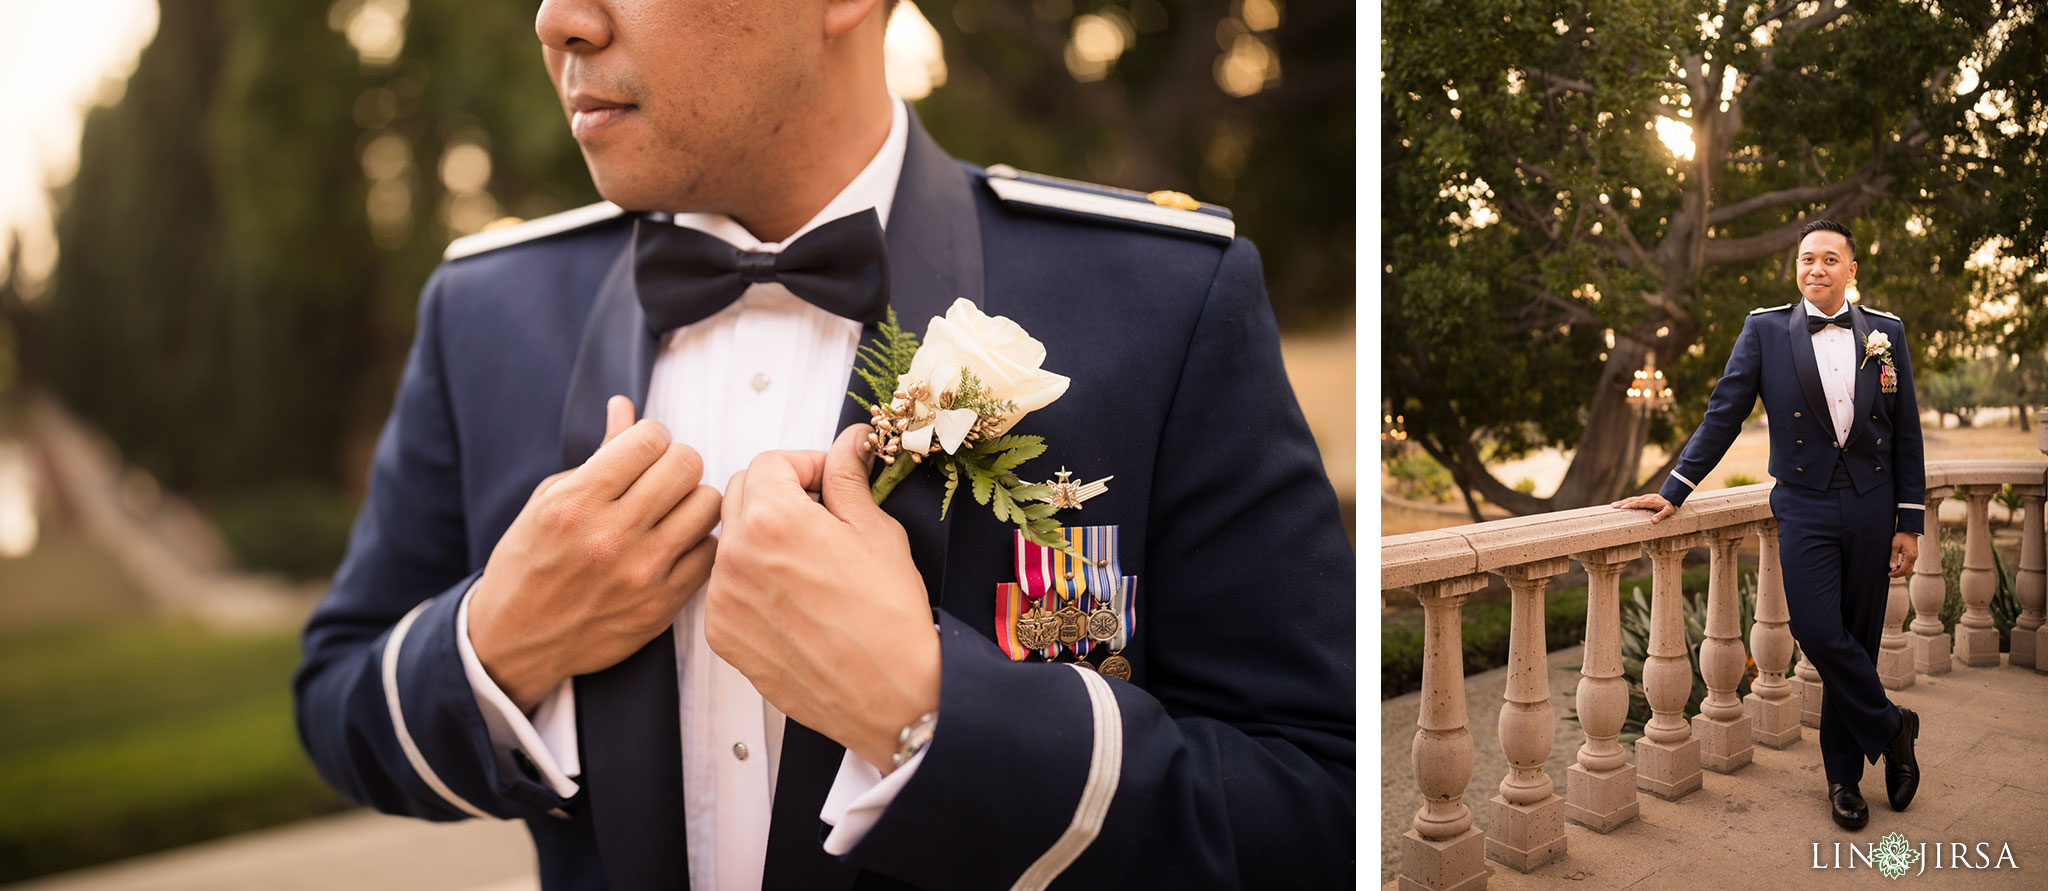 13 los angeles county filipino groom wedding photography